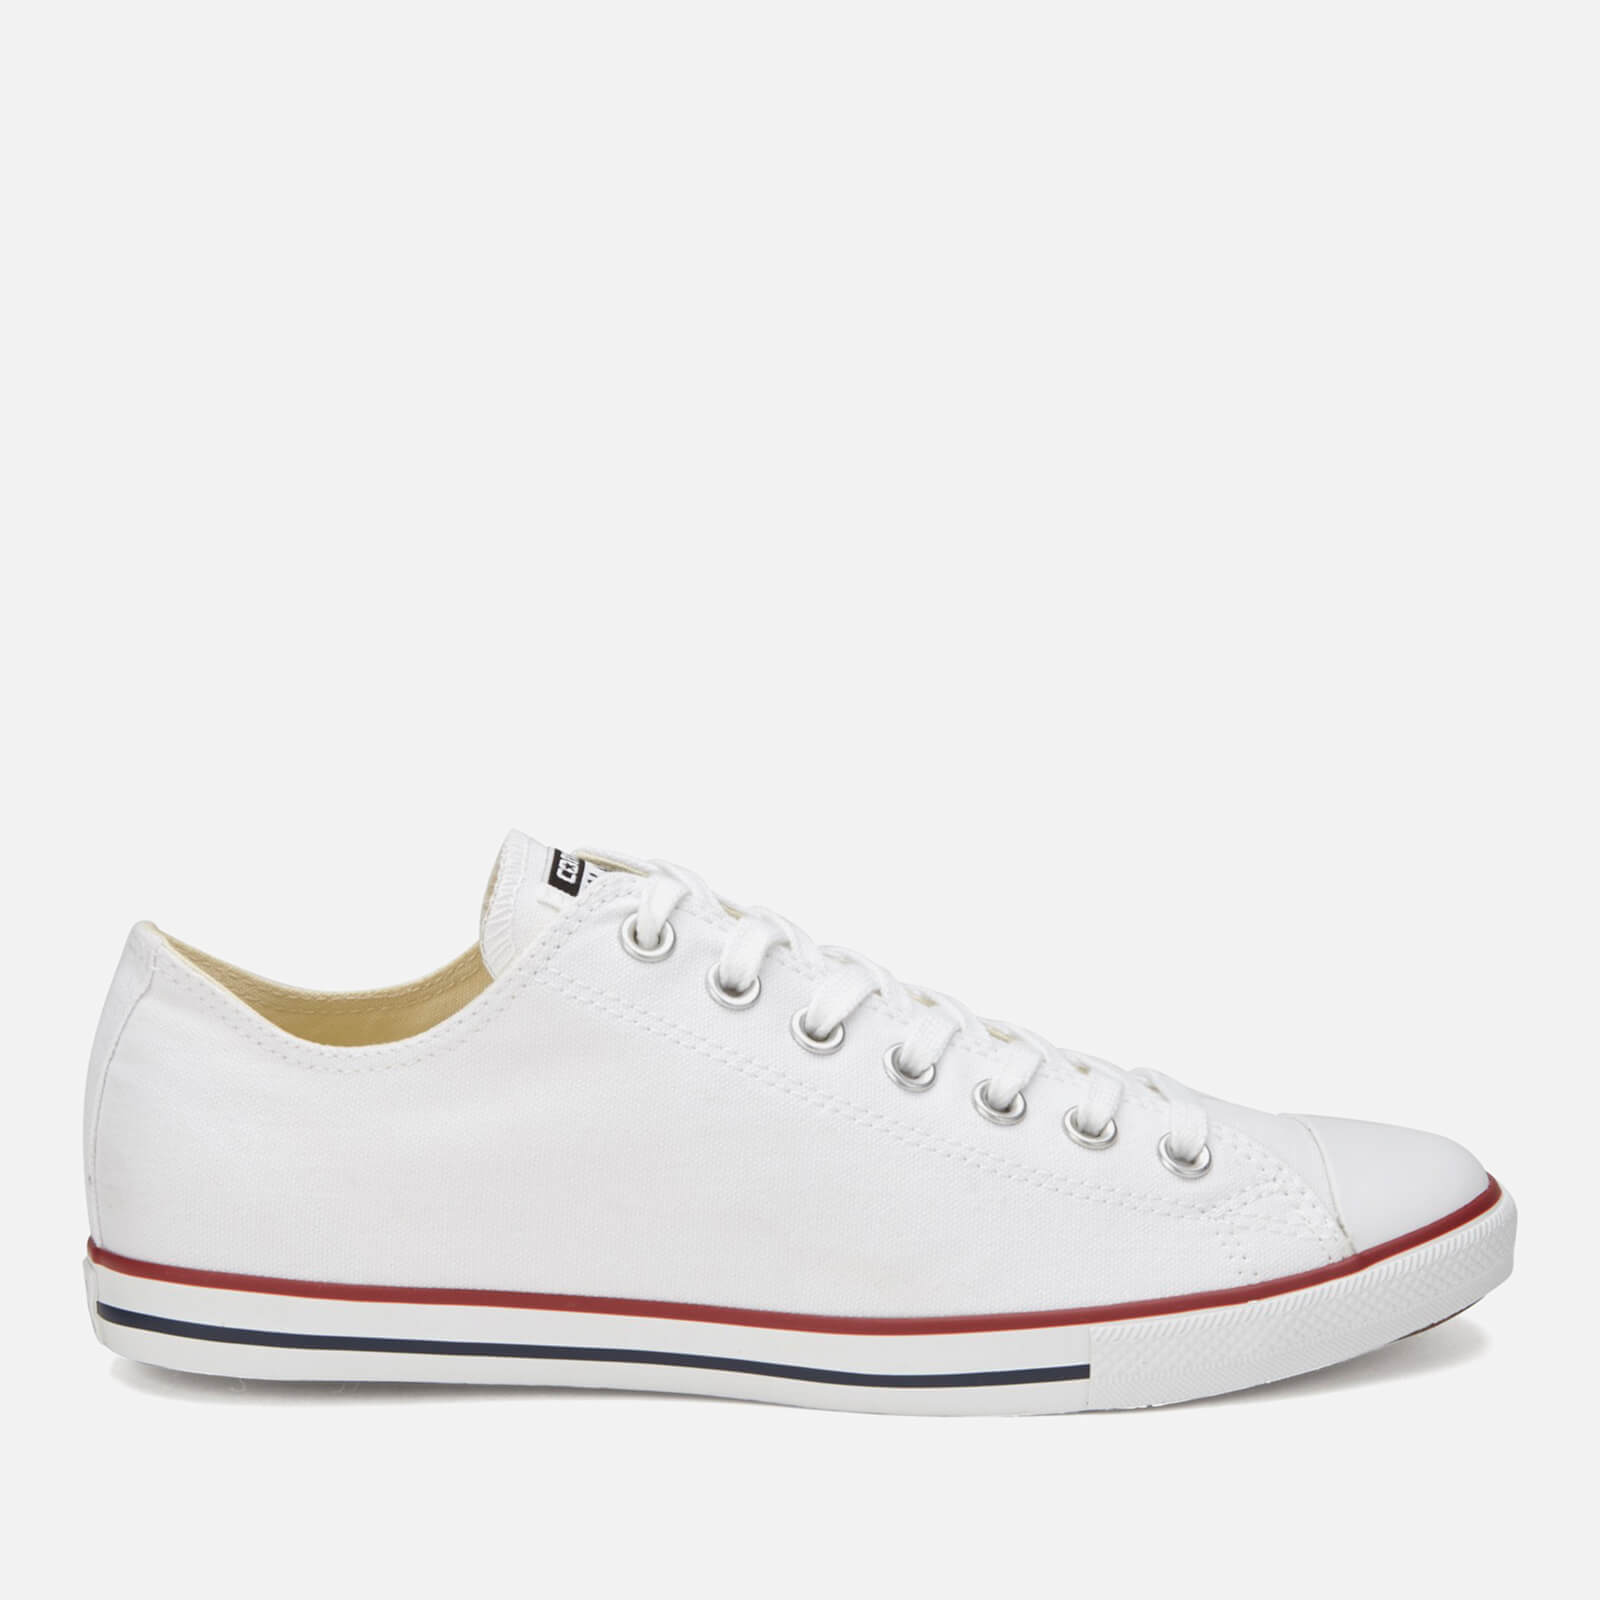 77faa4a407b Converse Men's Chuck Taylor Alll Star Lean OX Trainers - White - Free UK  Delivery over £50